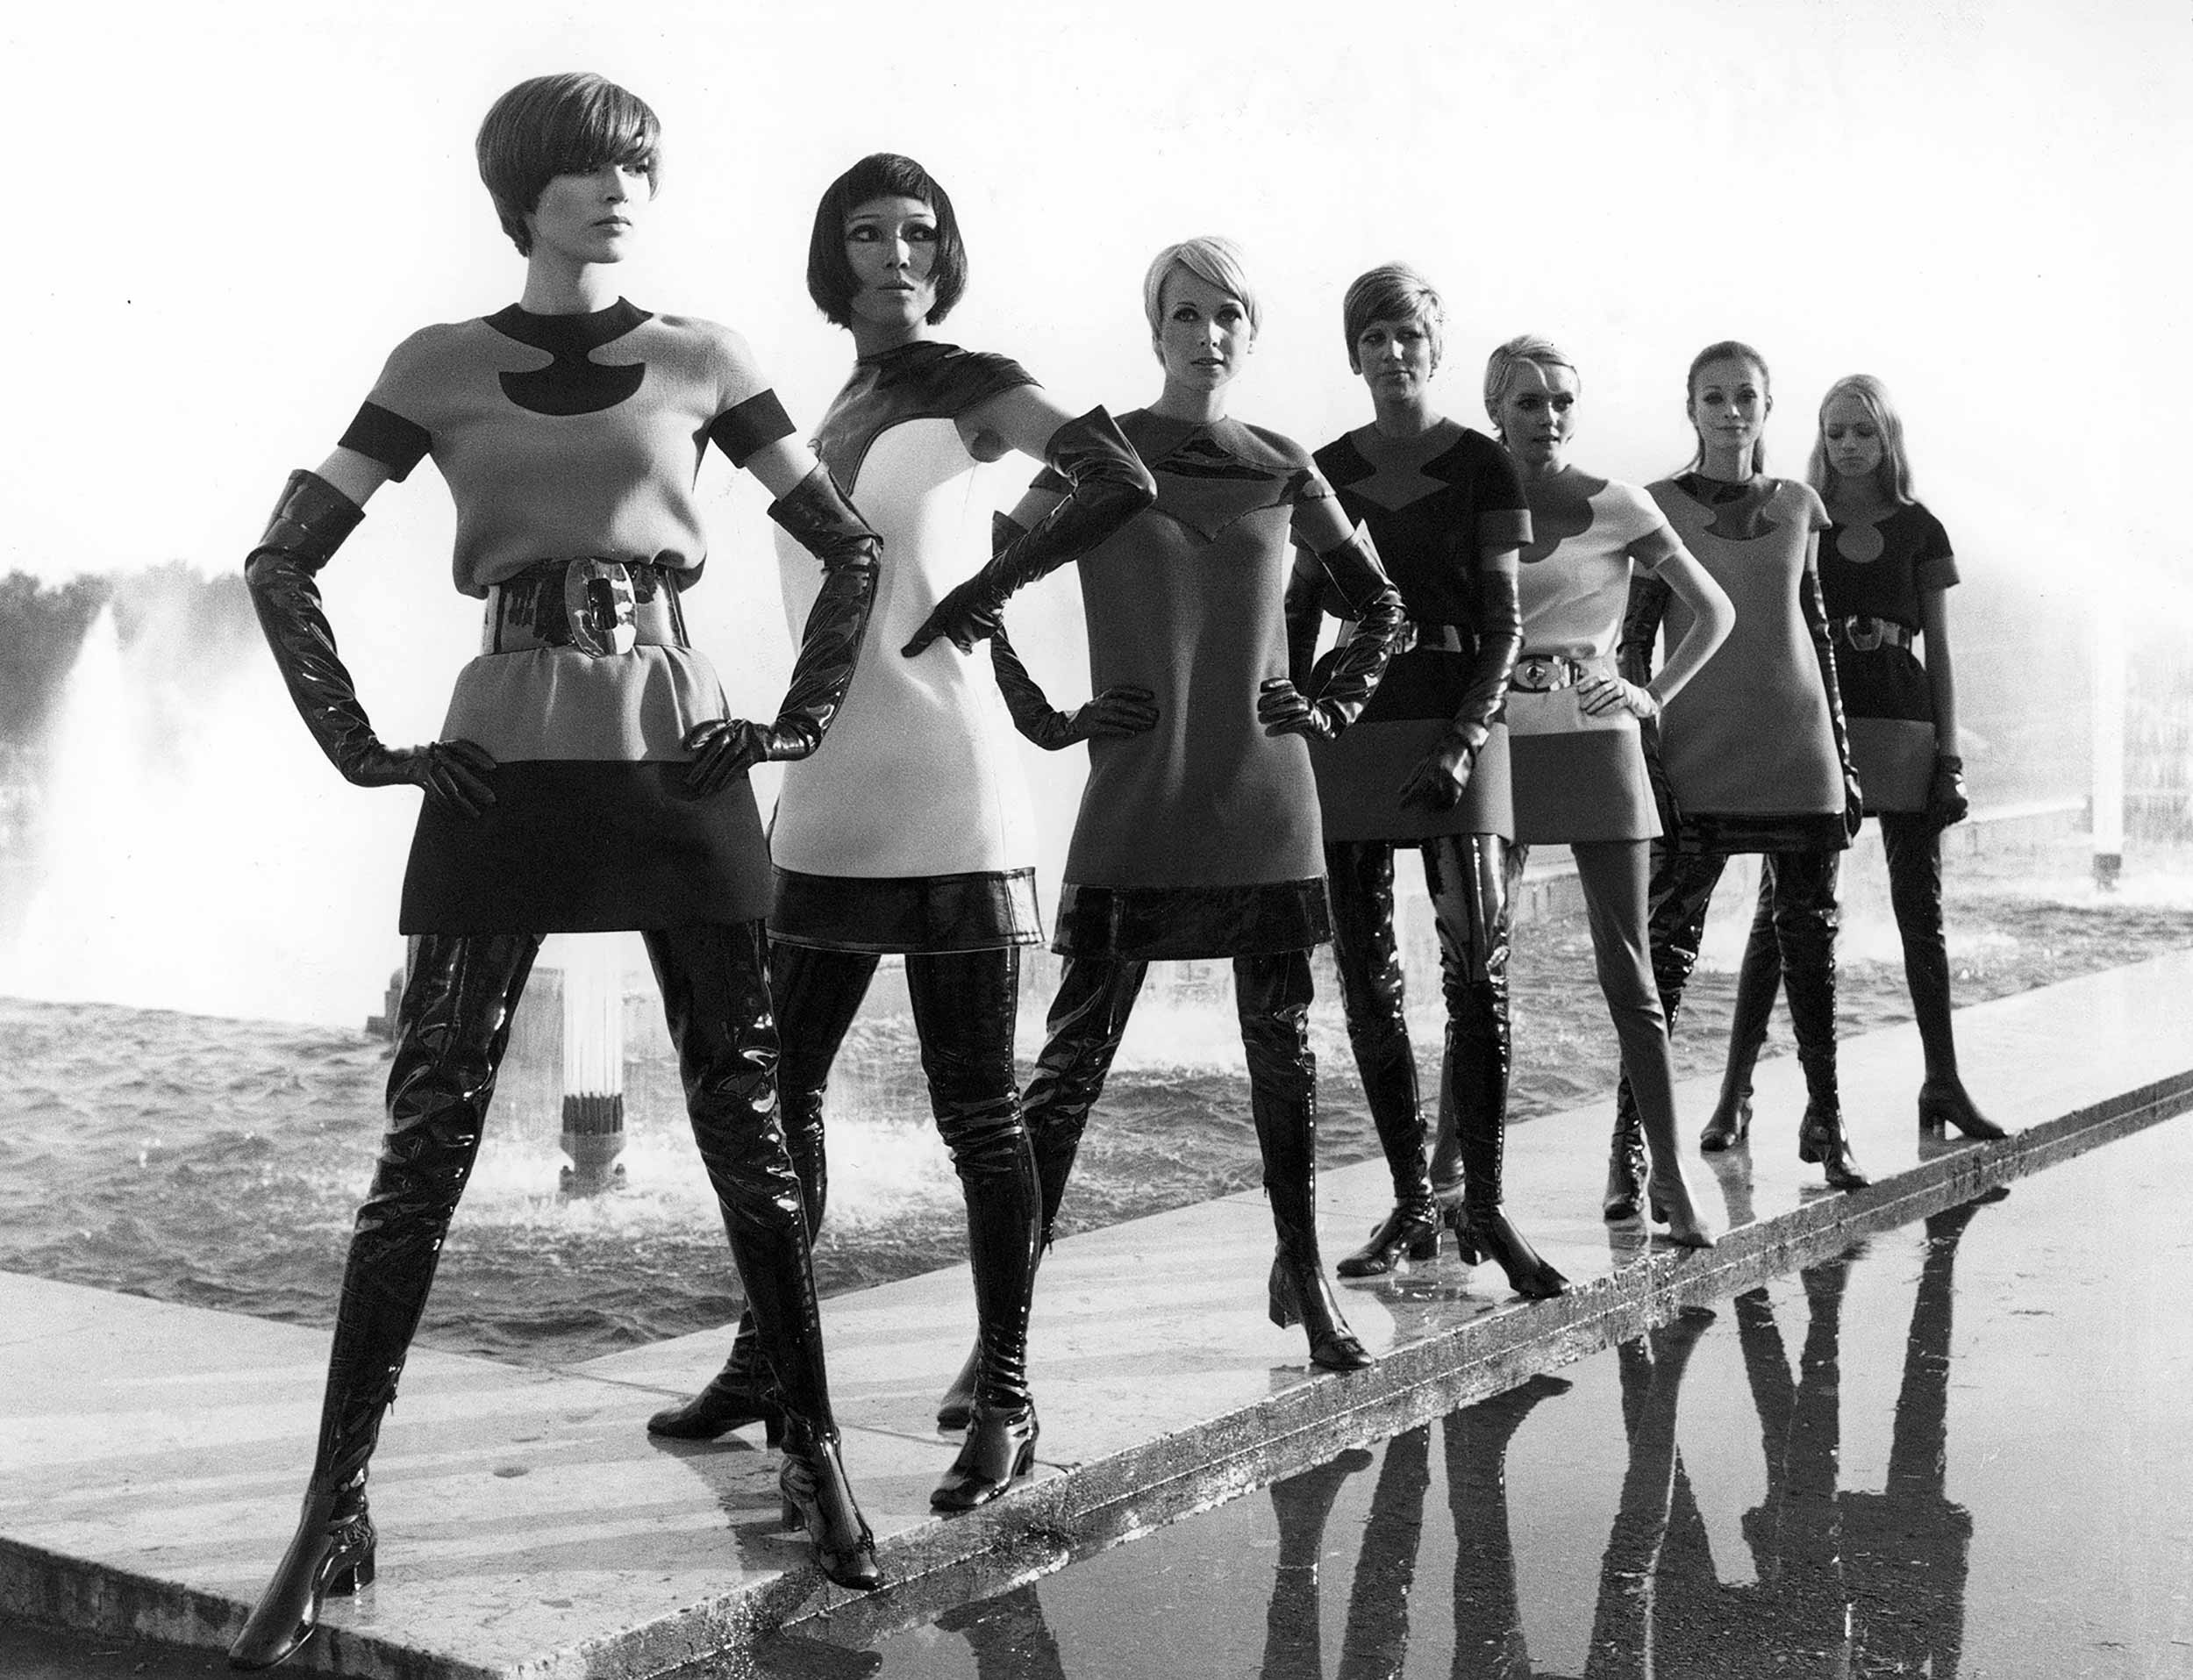 Pierre Cardin's intergalactic designs for worlds undiscovered